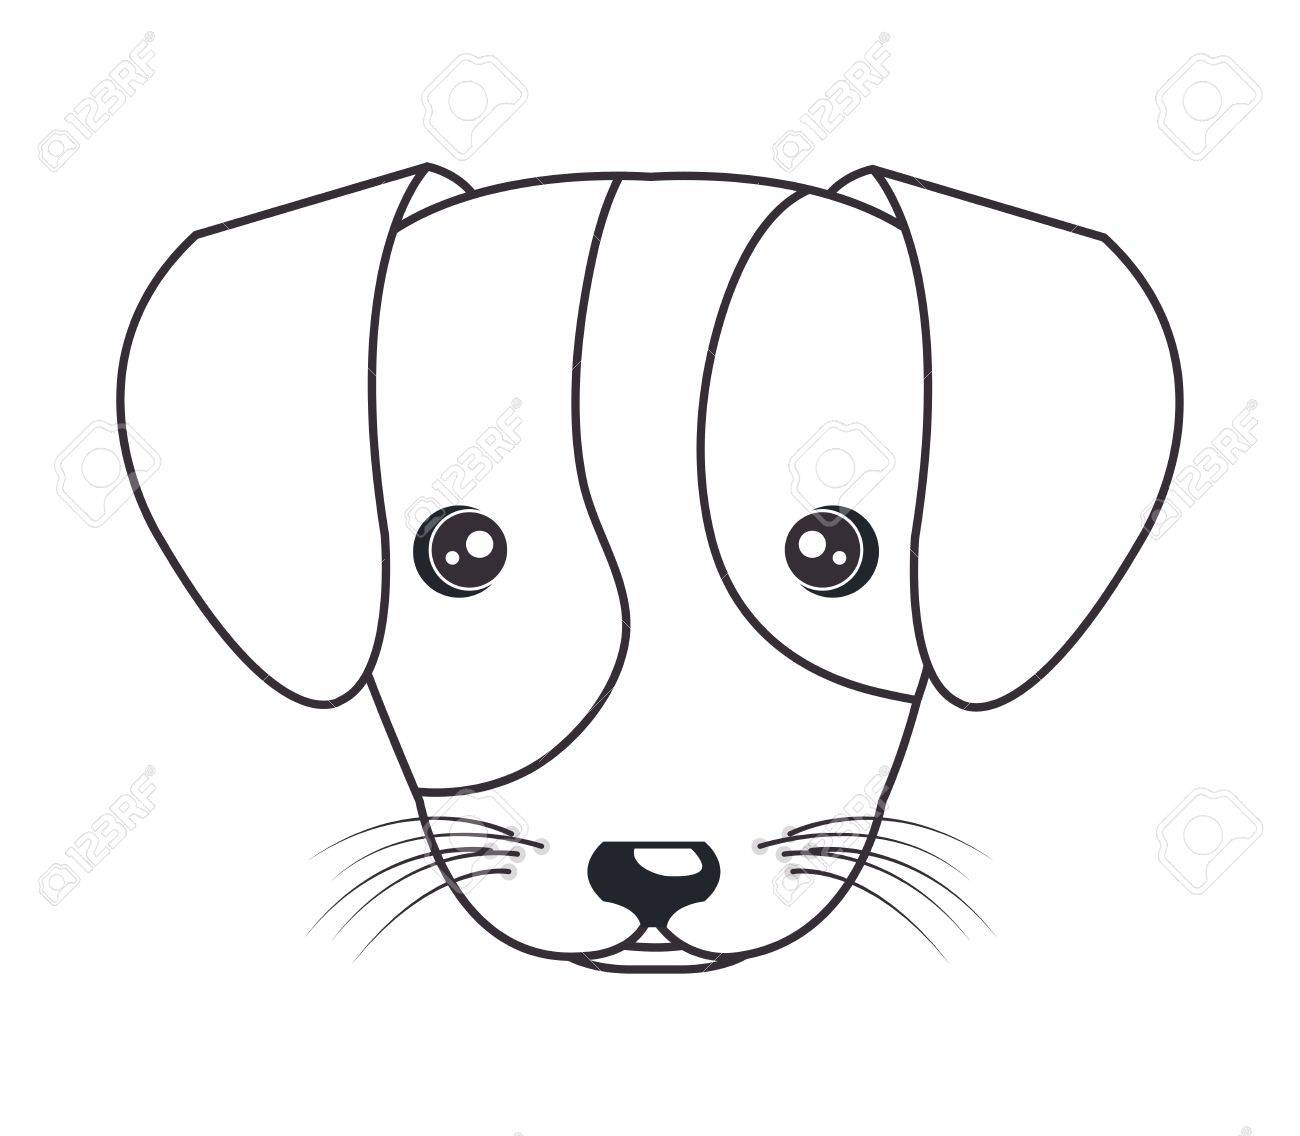 Line Drawing Of A Dog Face : Puppy dog face drawing at getdrawings free for